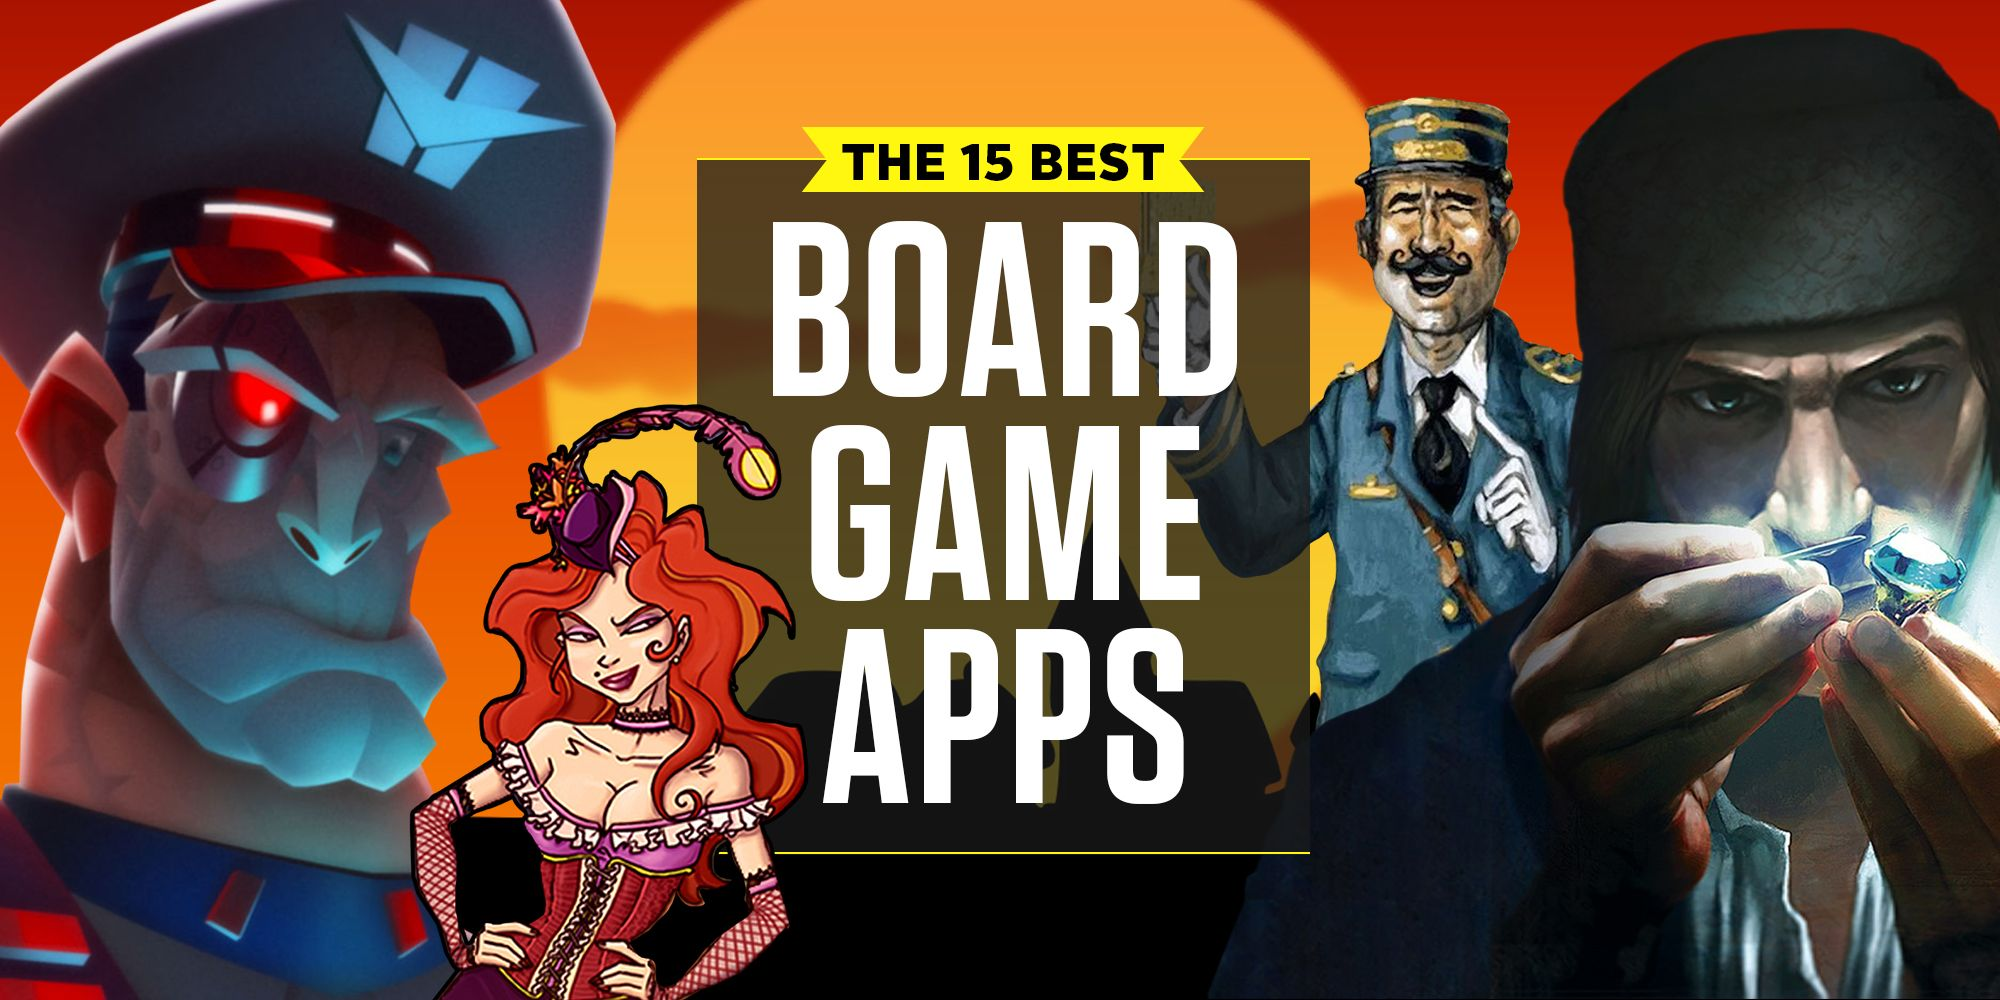 The 15 Best Board Game Apps